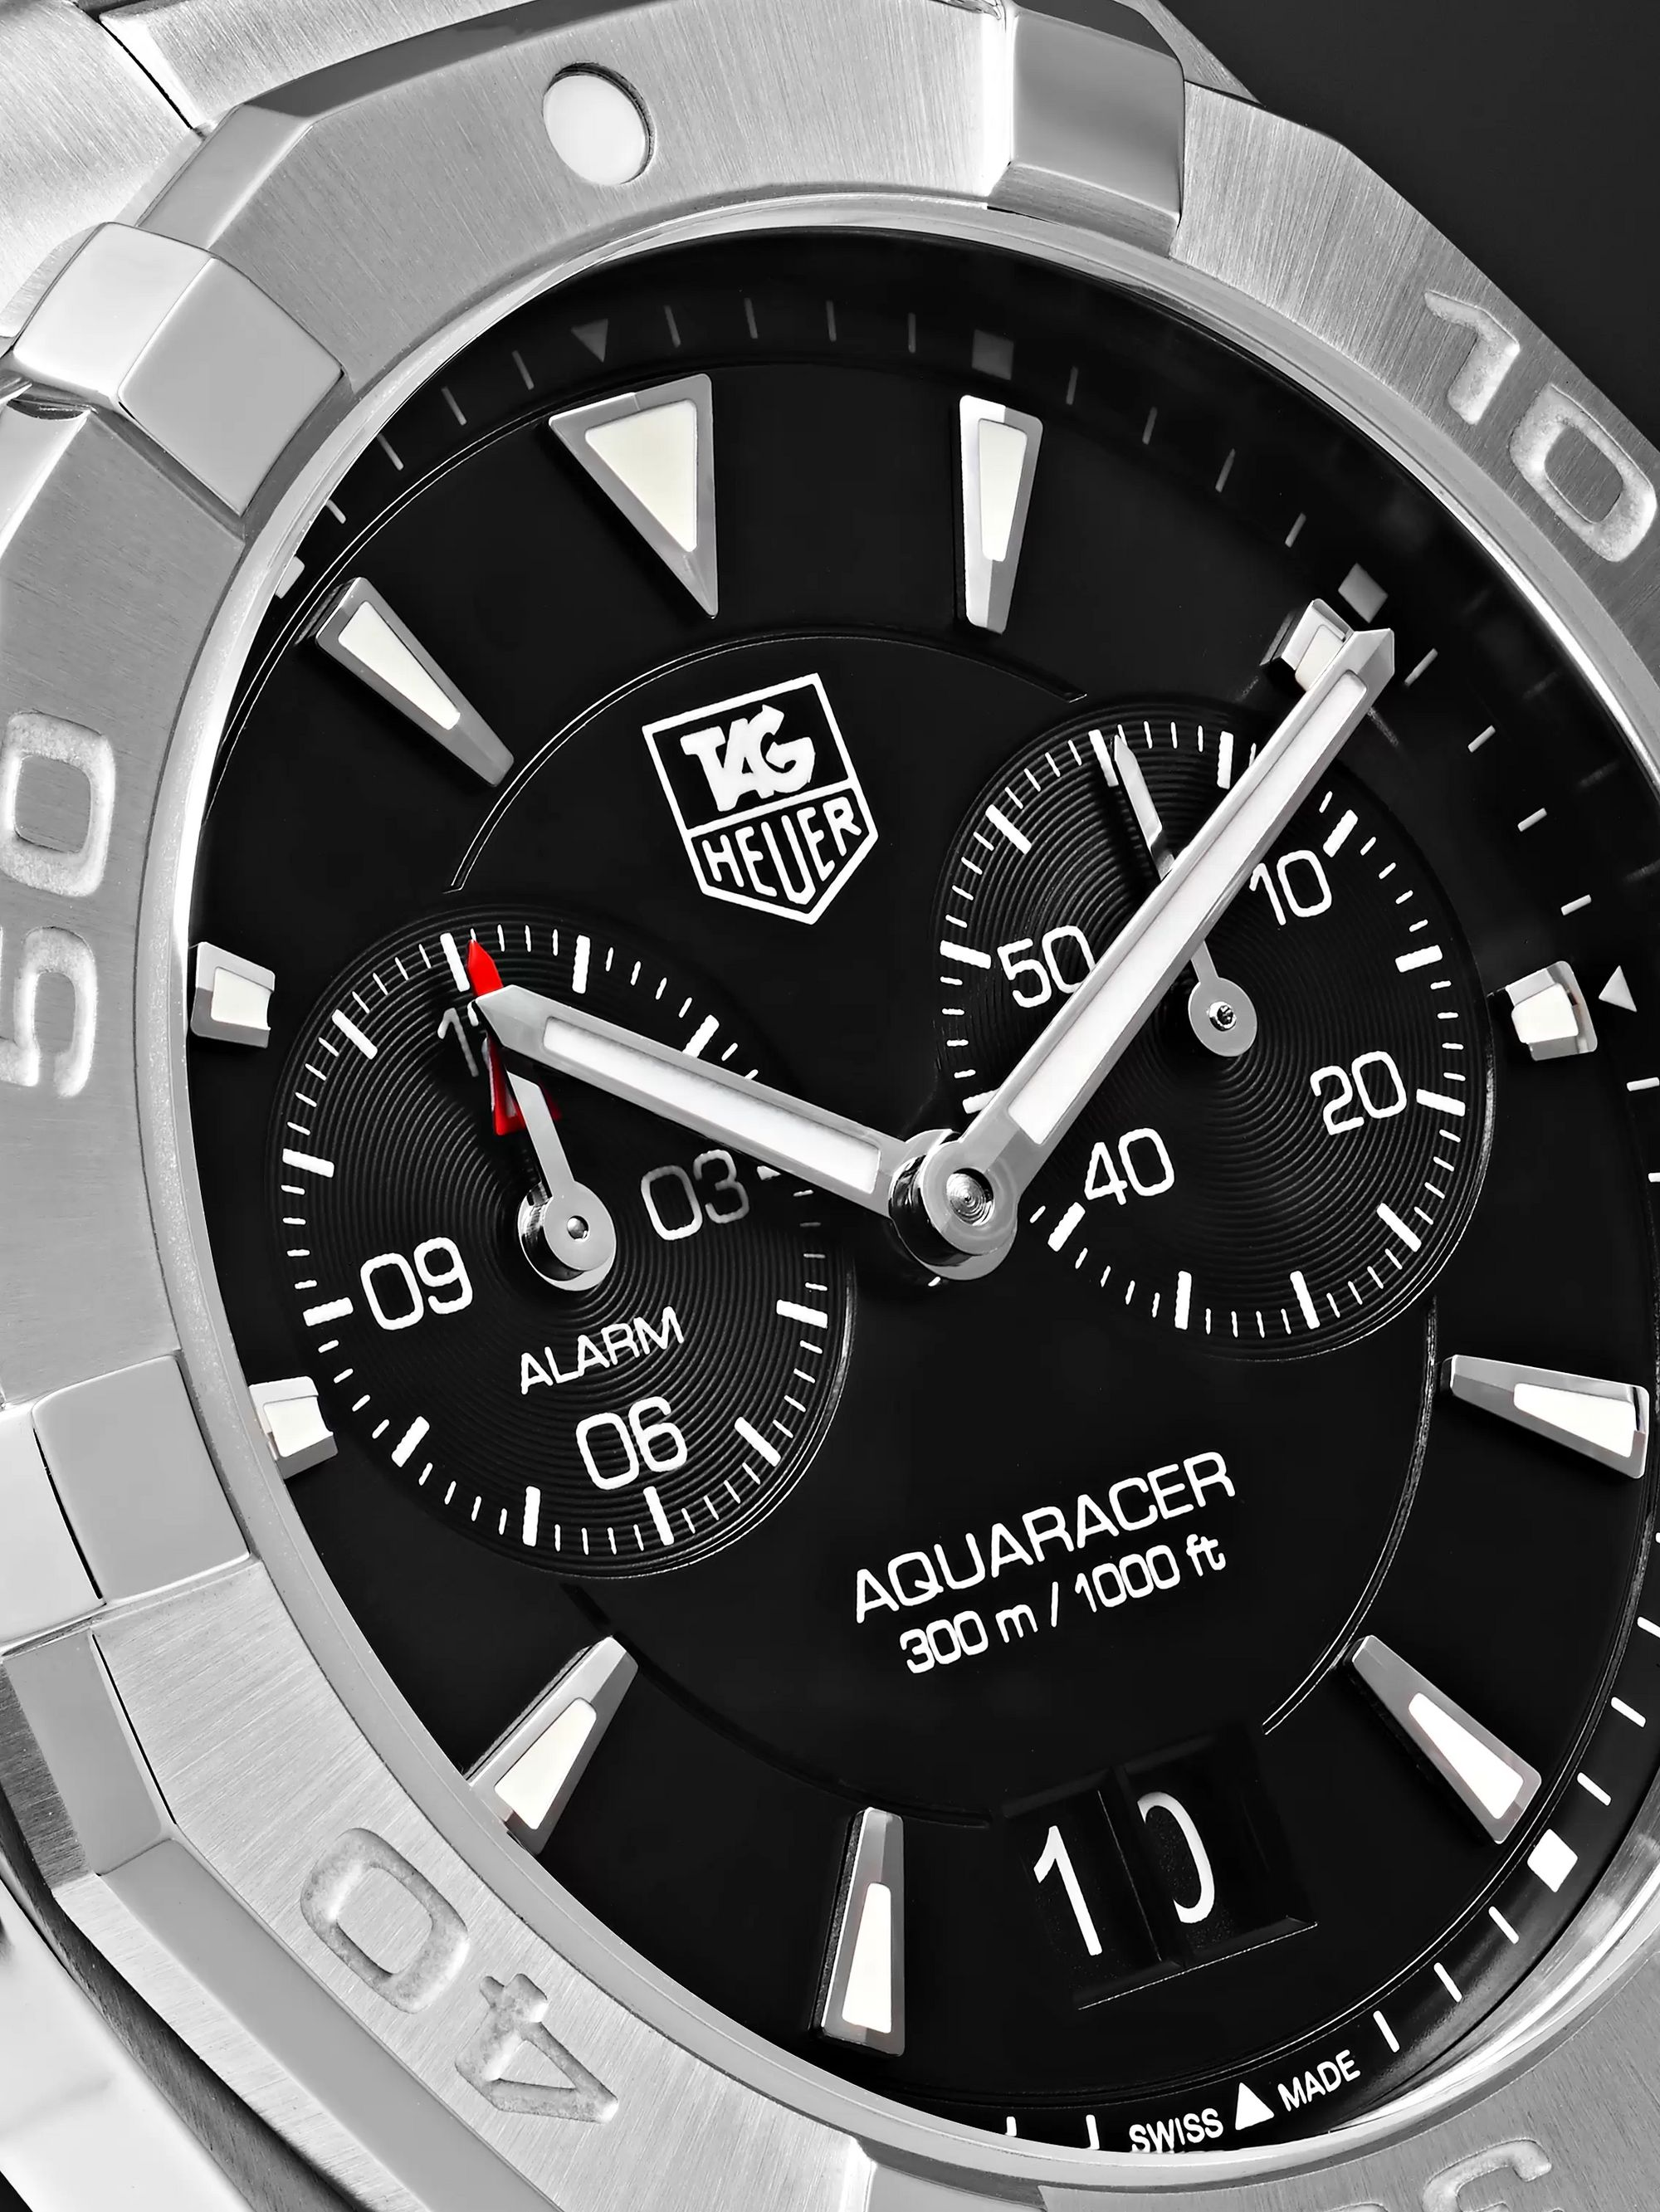 TAG Heuer Aquaracer Alarm Quartz 40.5mm Steel Watch, Ref. No. WAY111Z.BA0928